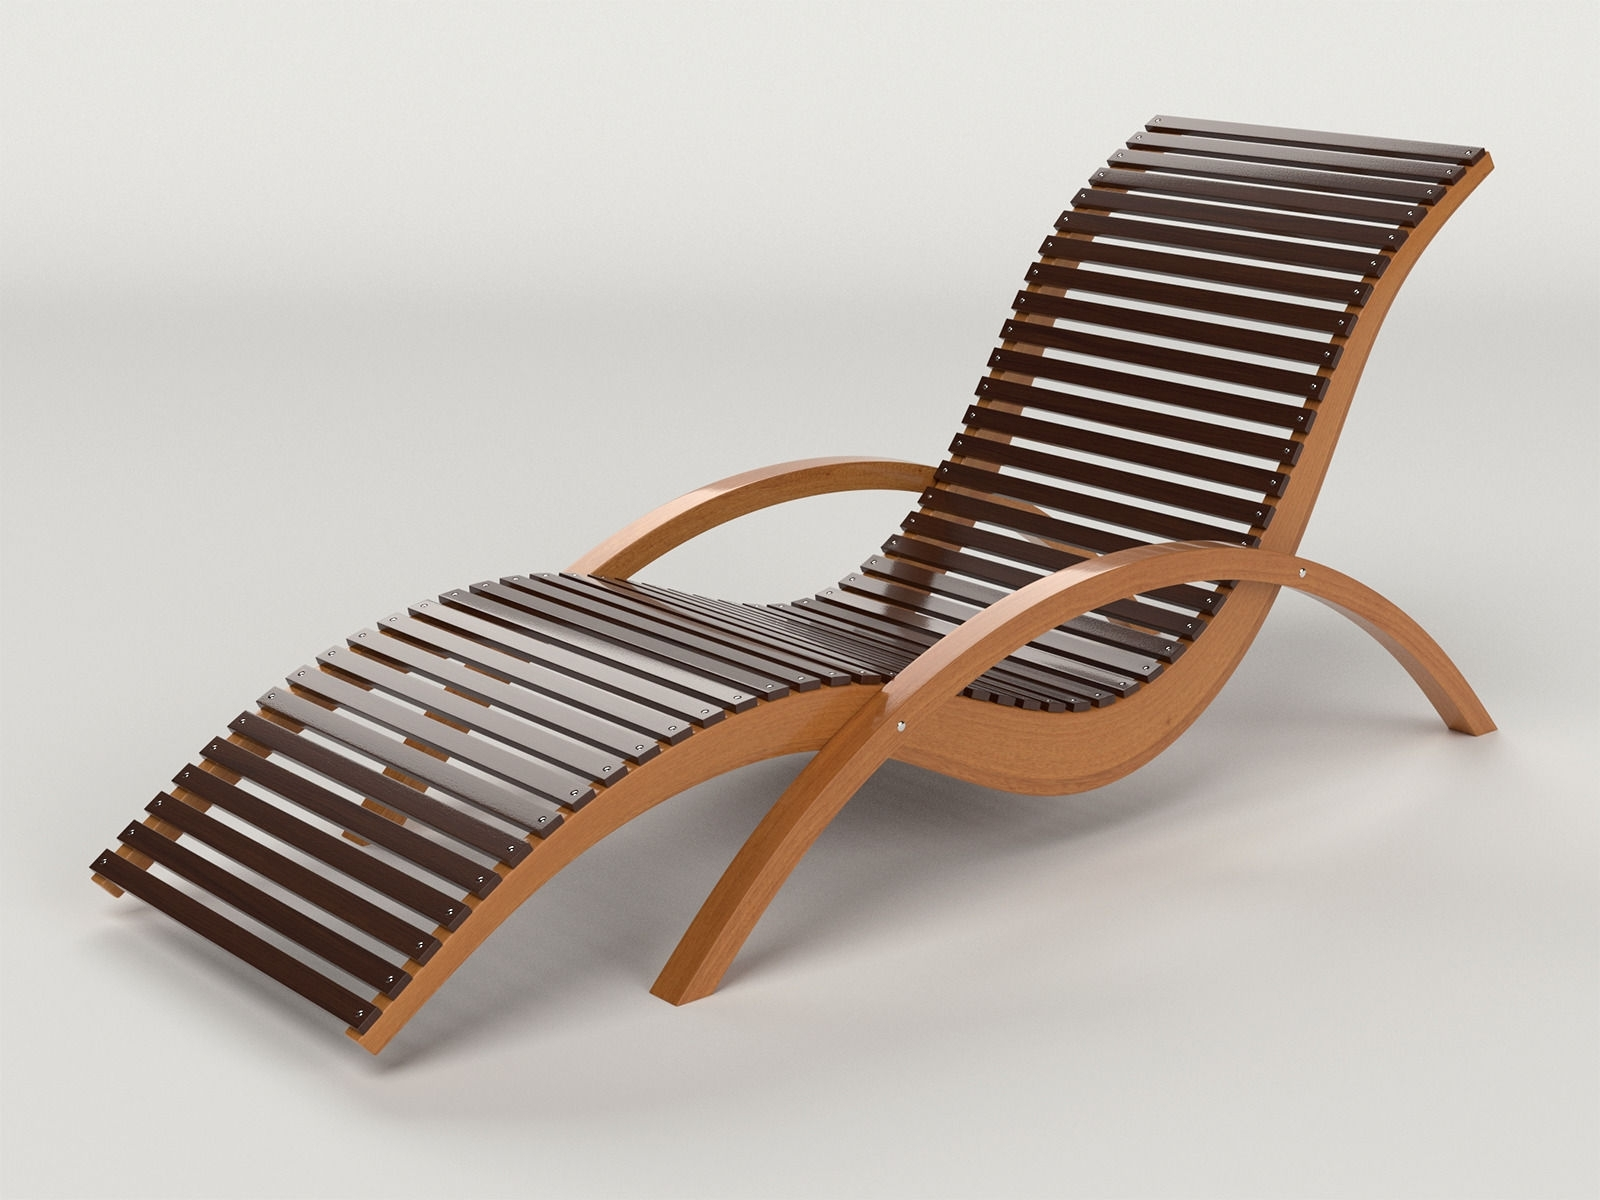 Lounge Chair : Folding Patio Chaise Lounge Chairs Patio Dining Pertaining To Best And Newest Chaise Lounge Chairs For Backyard (View 10 of 15)